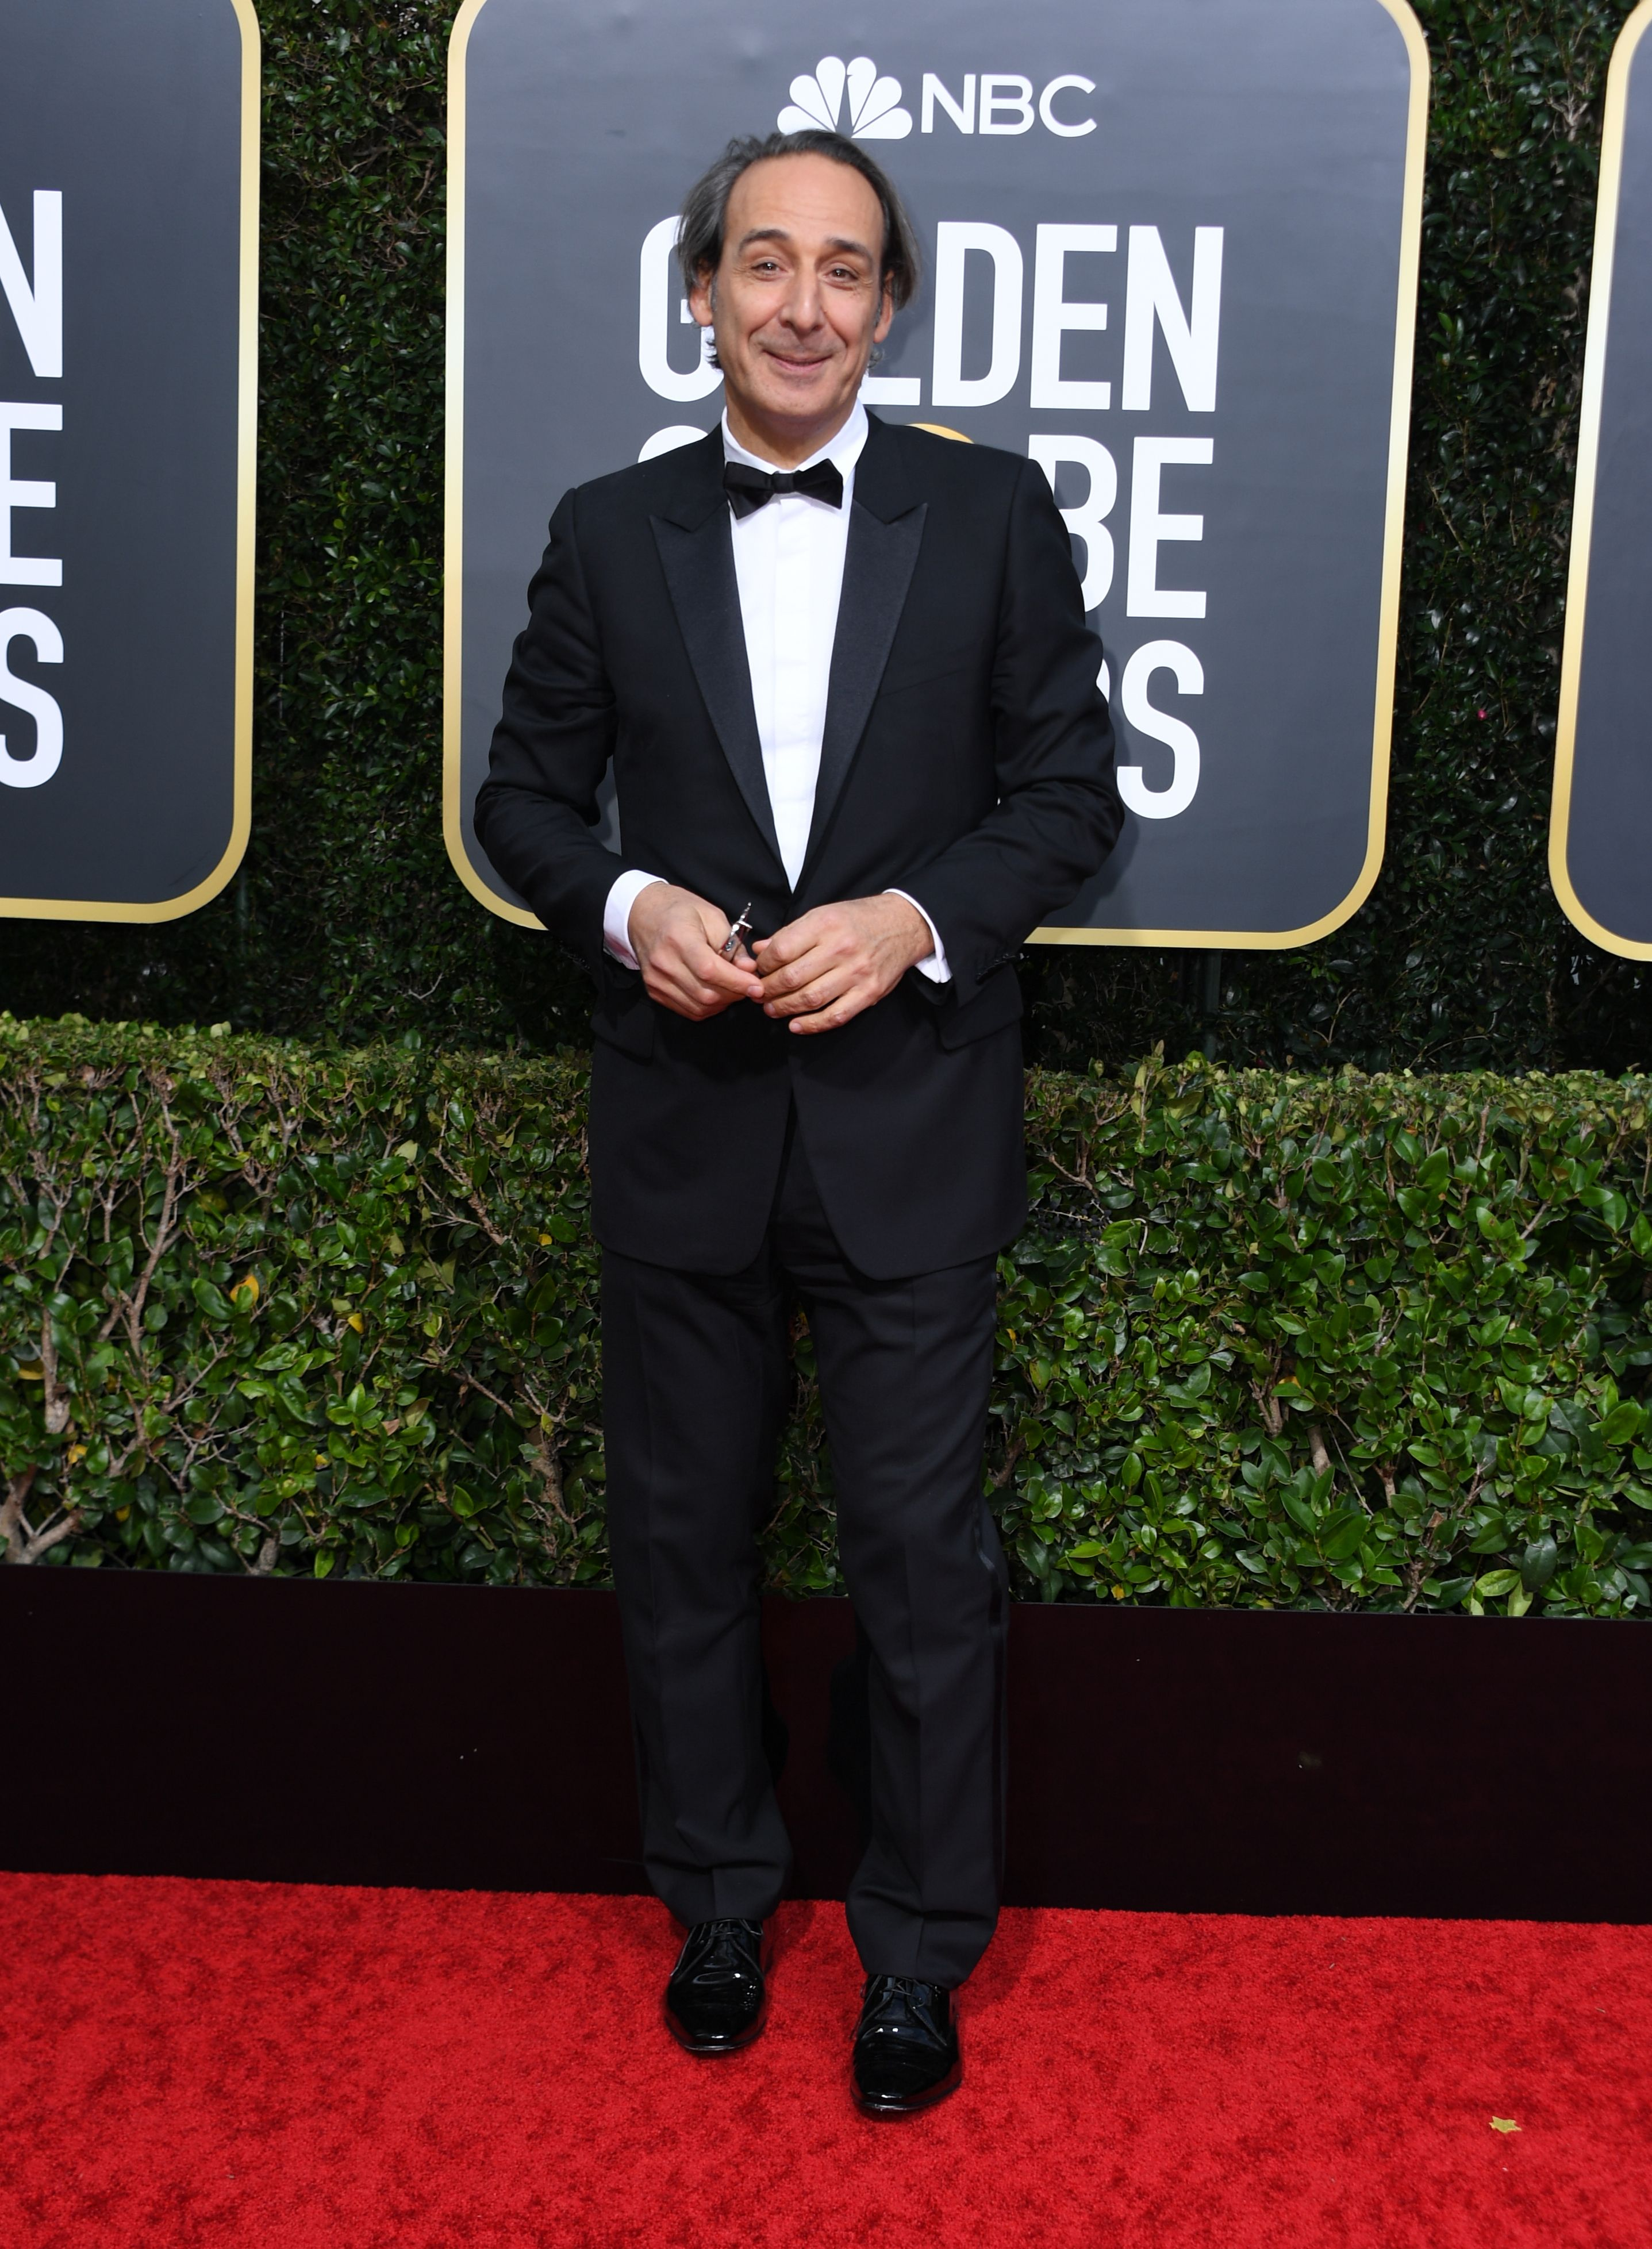 French composer Alexandre Desplat arrives for the 77th annual Golden Globe Awards on January 5, 2020, at The Beverly Hilton hotel in Beverly Hills, California. (Photo by VALERIE MACON / AFP) (Photo by VALERIE MACON/AFP via Getty Images)